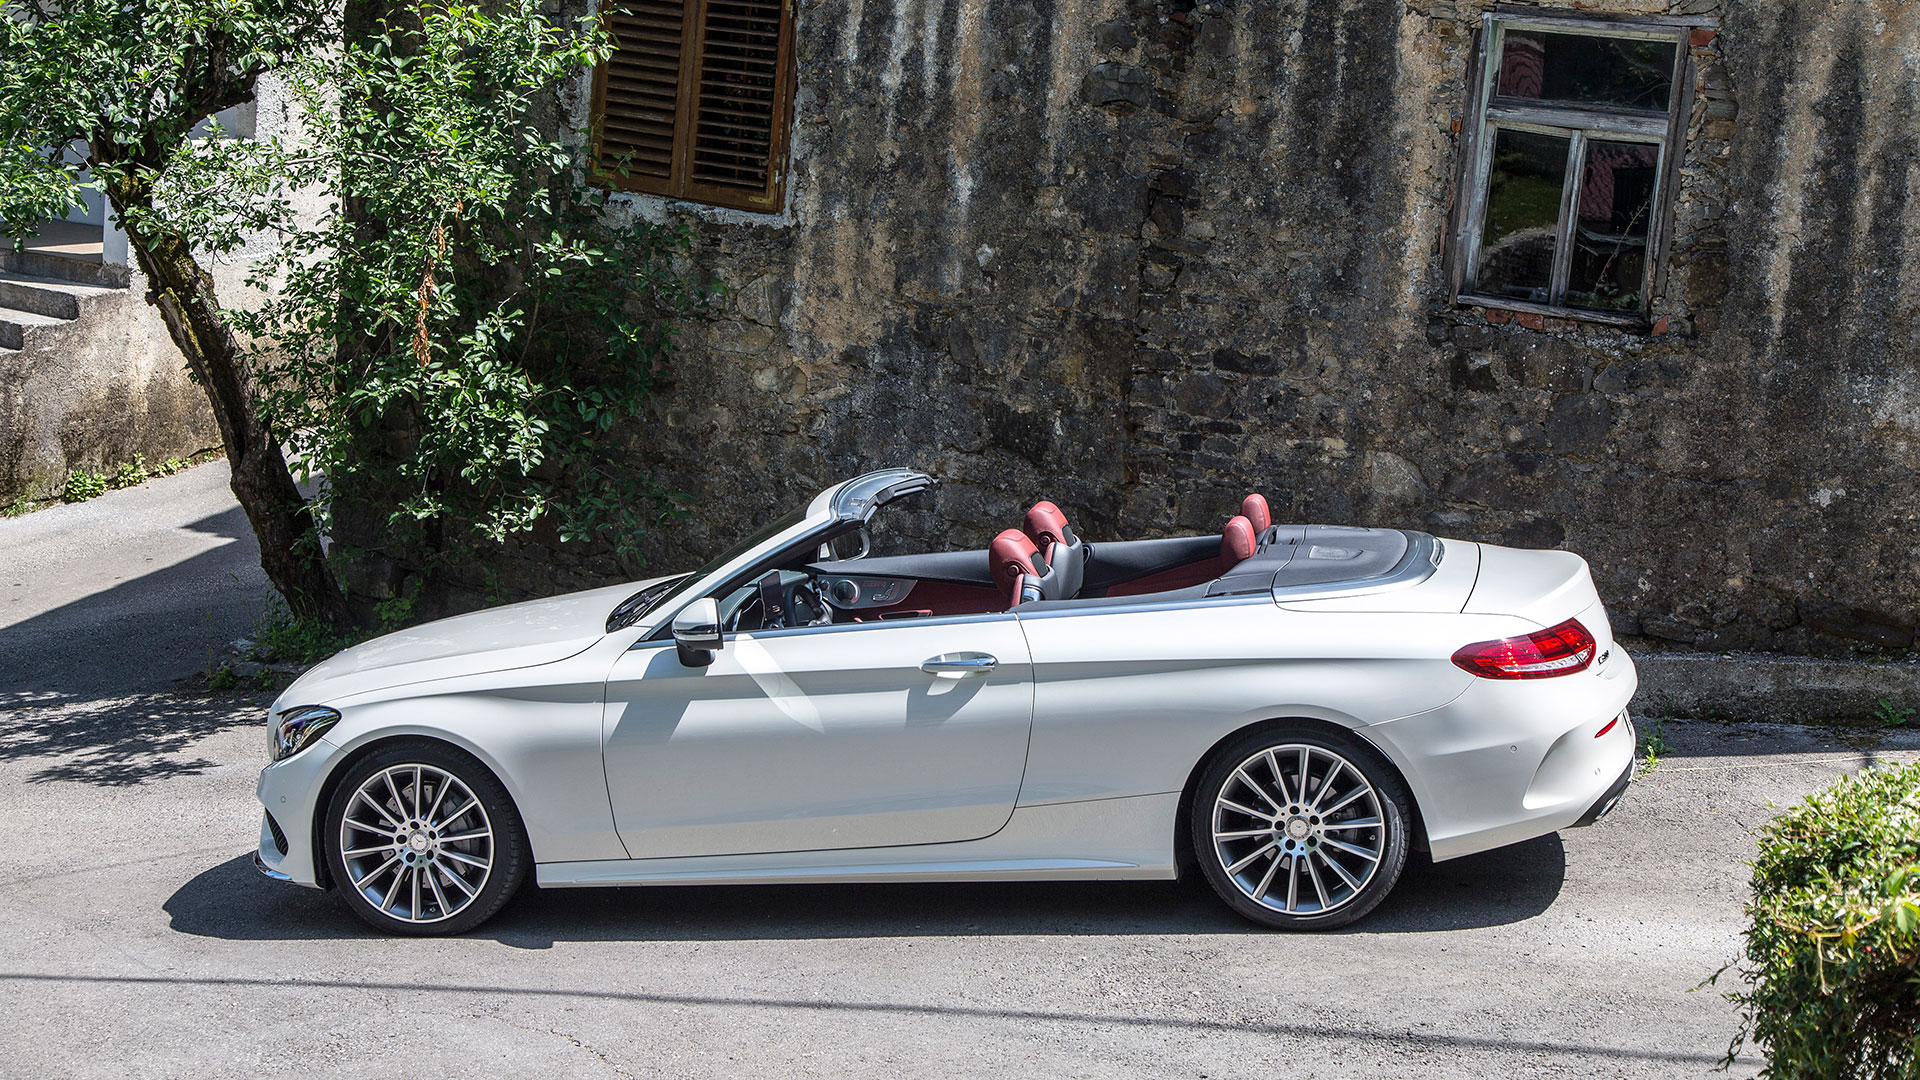 Mercedes c300 cabriolet and mercedes amg c63 s cabriolet for Mercedes benz 300 amg